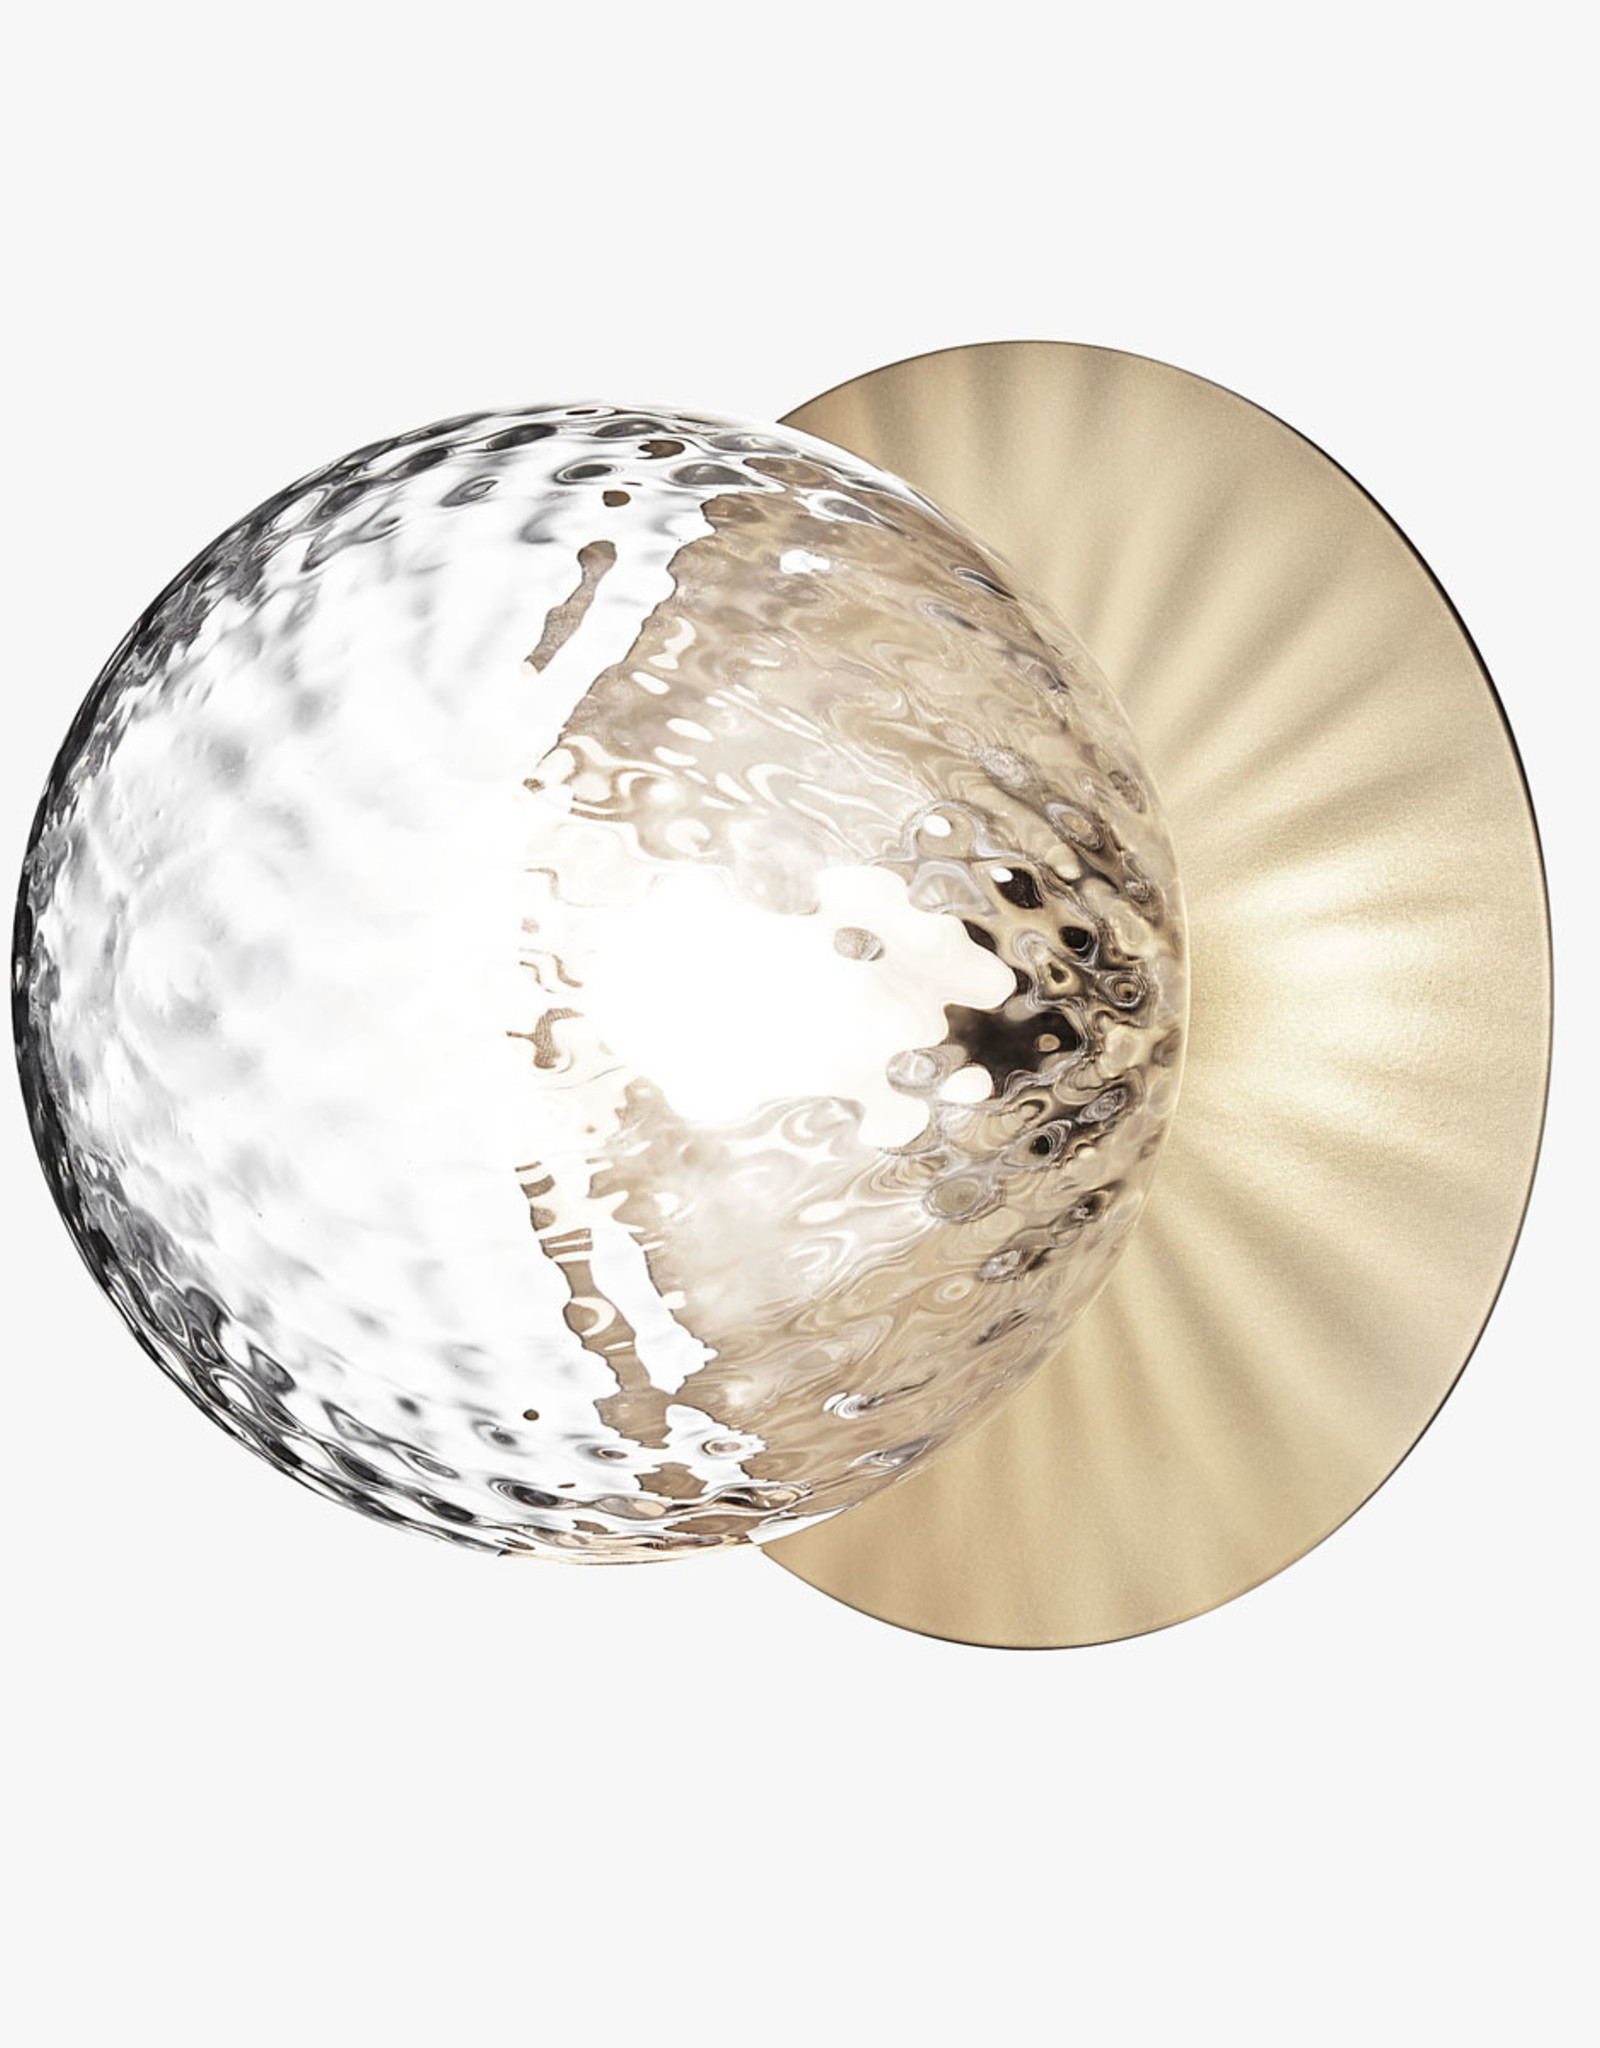 Nuura Liila 1 wall light by Sofie Refer | L | Nordic gold/optic clear